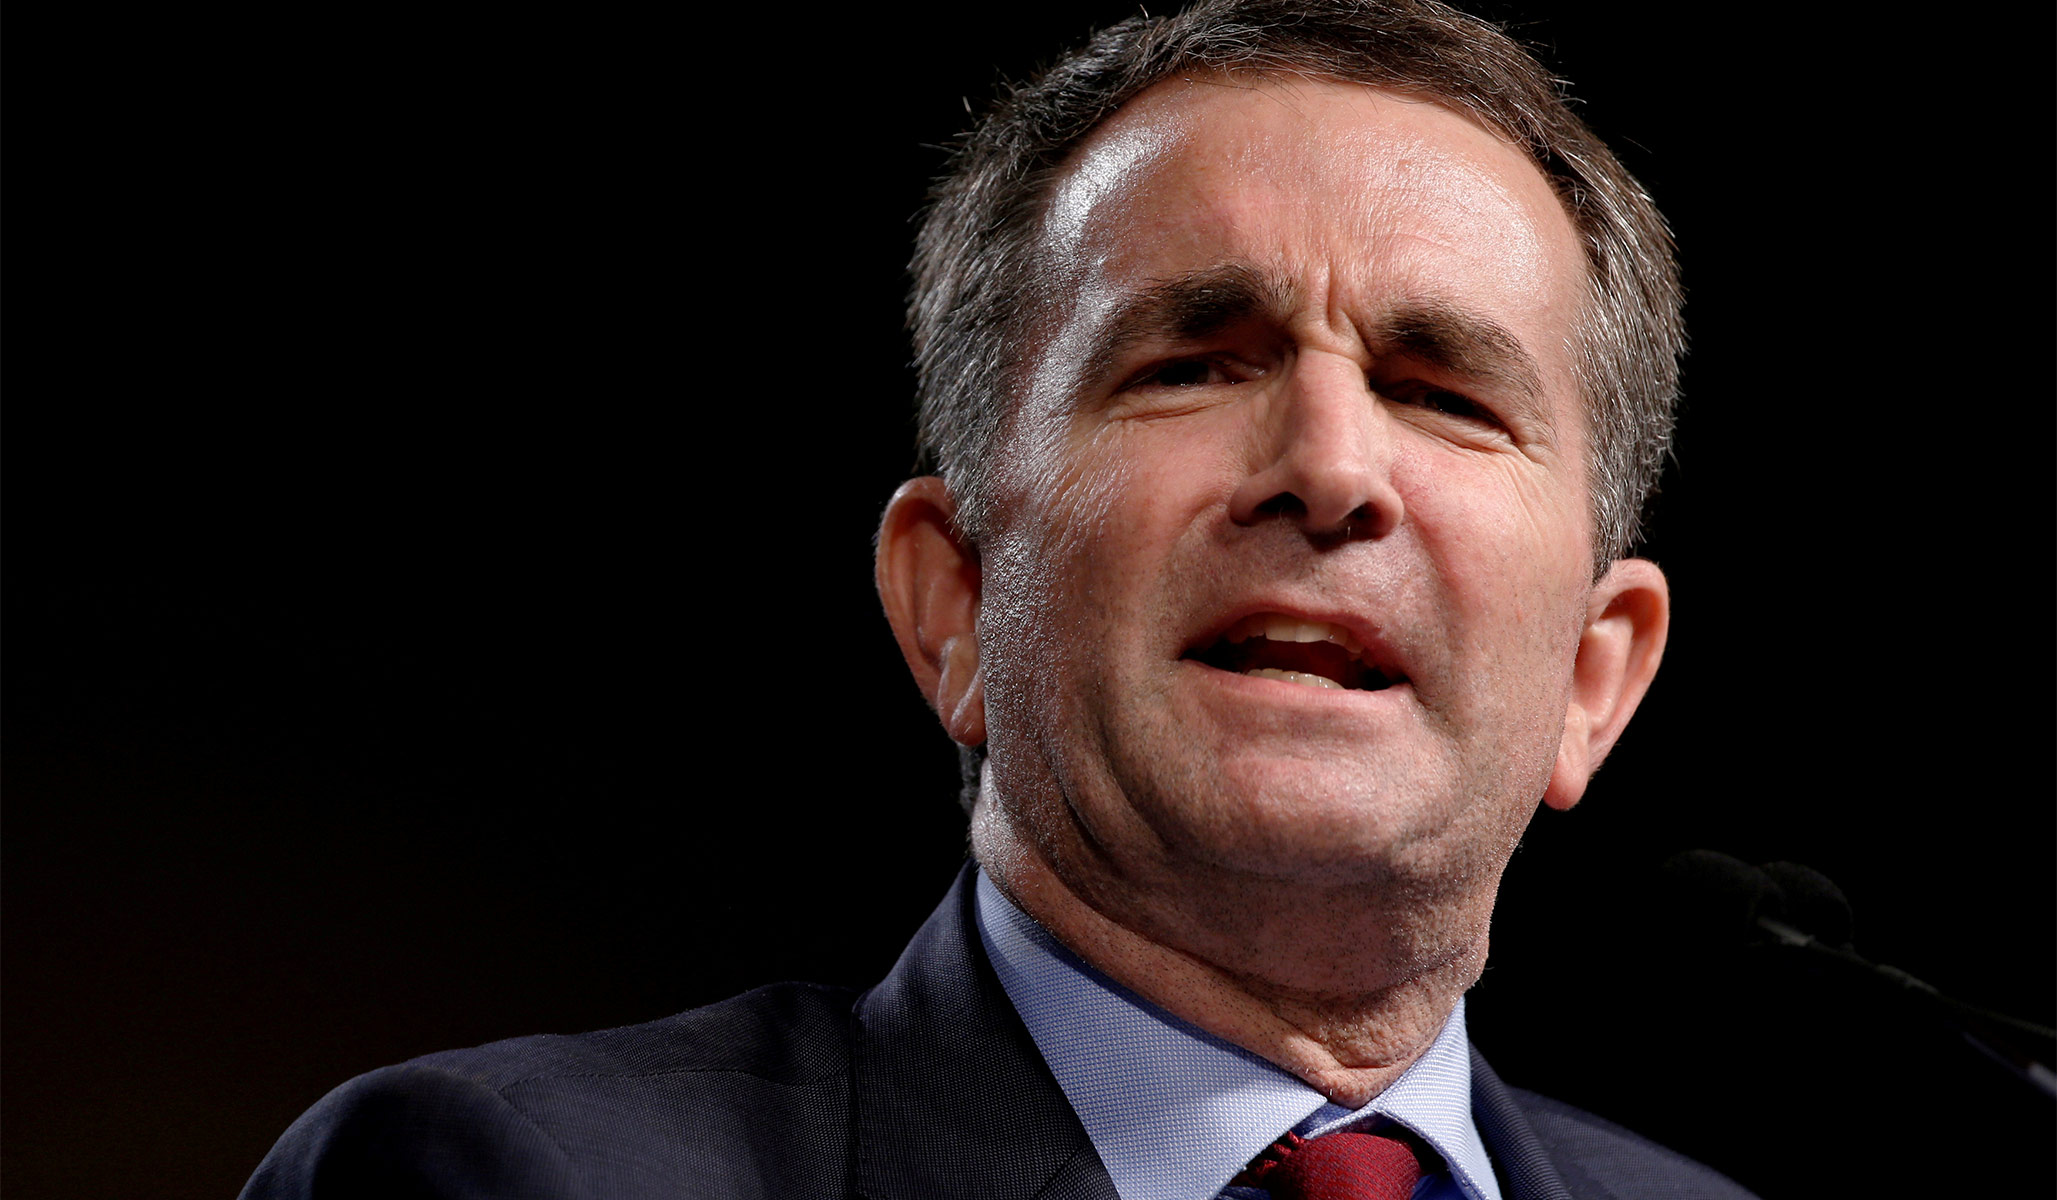 Virginia Governor Announces Right to Vote Restored for Over 22k Felons